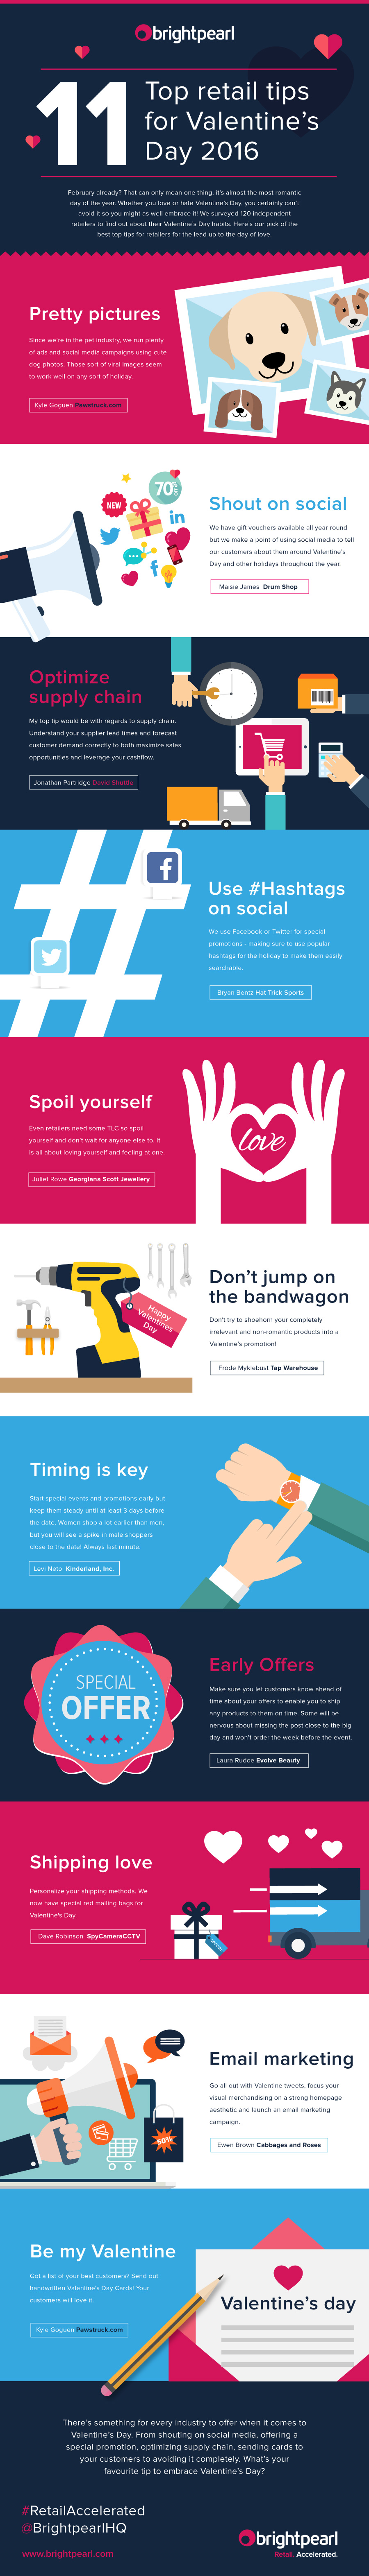 Valentine day customer top tips infographic